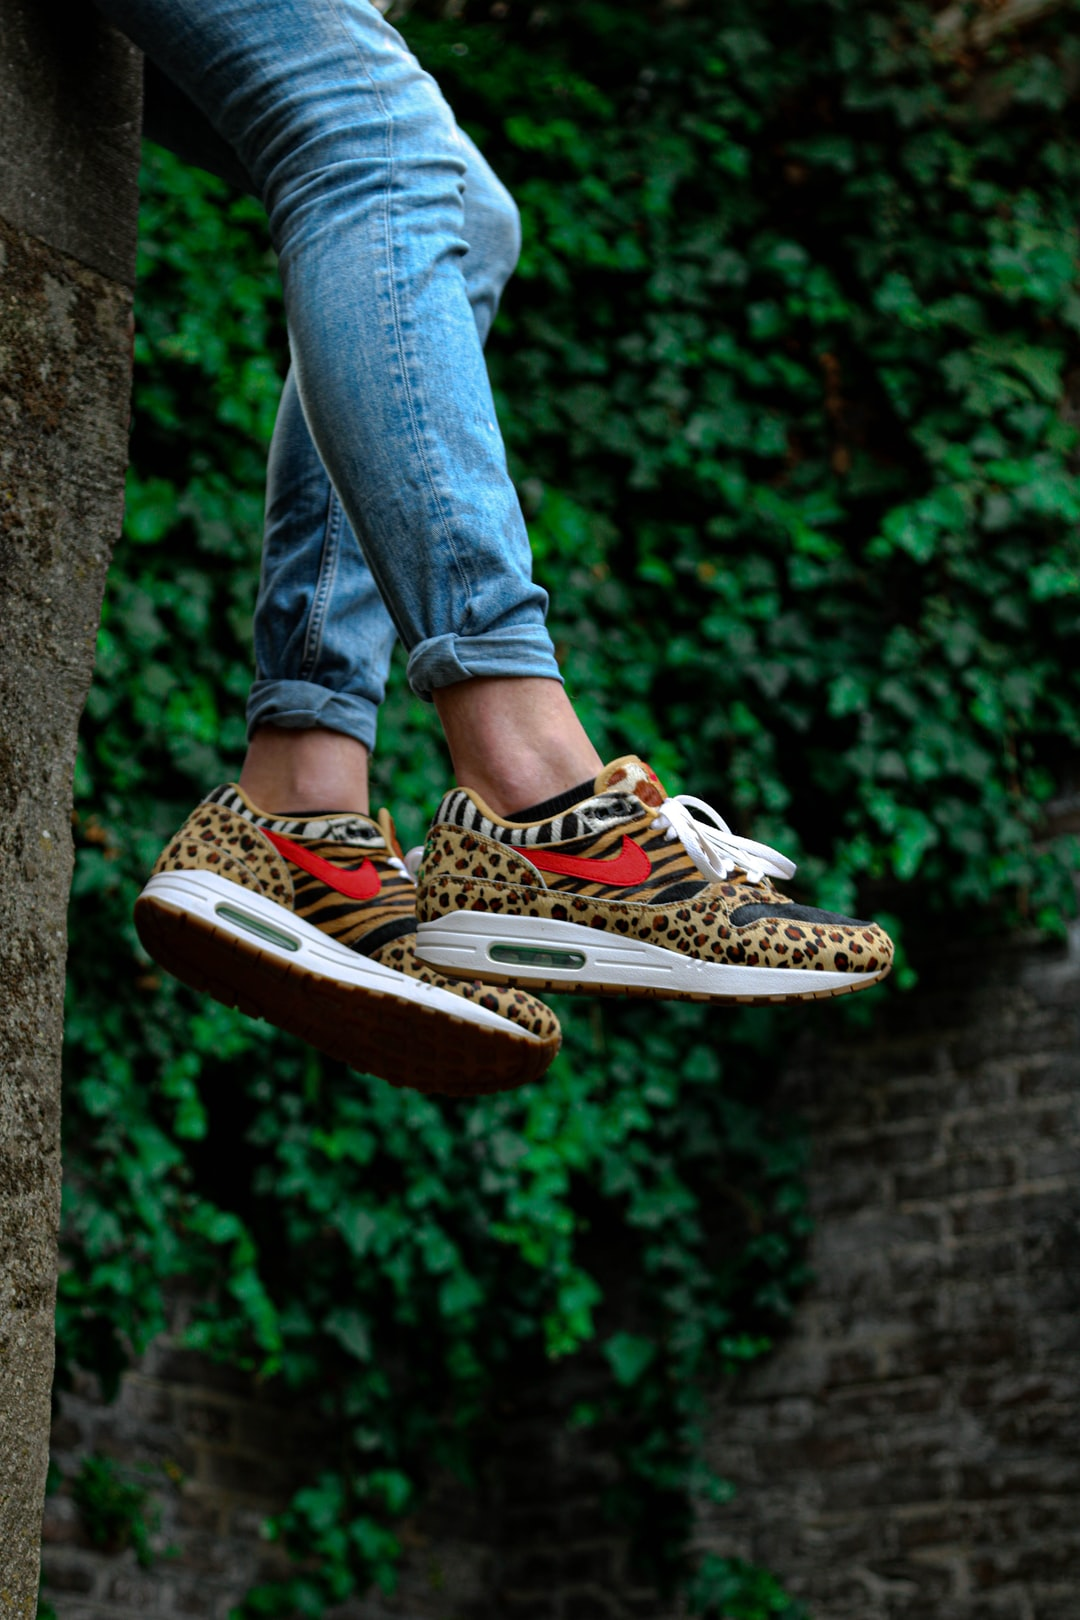 Sneaker photography in the jungle